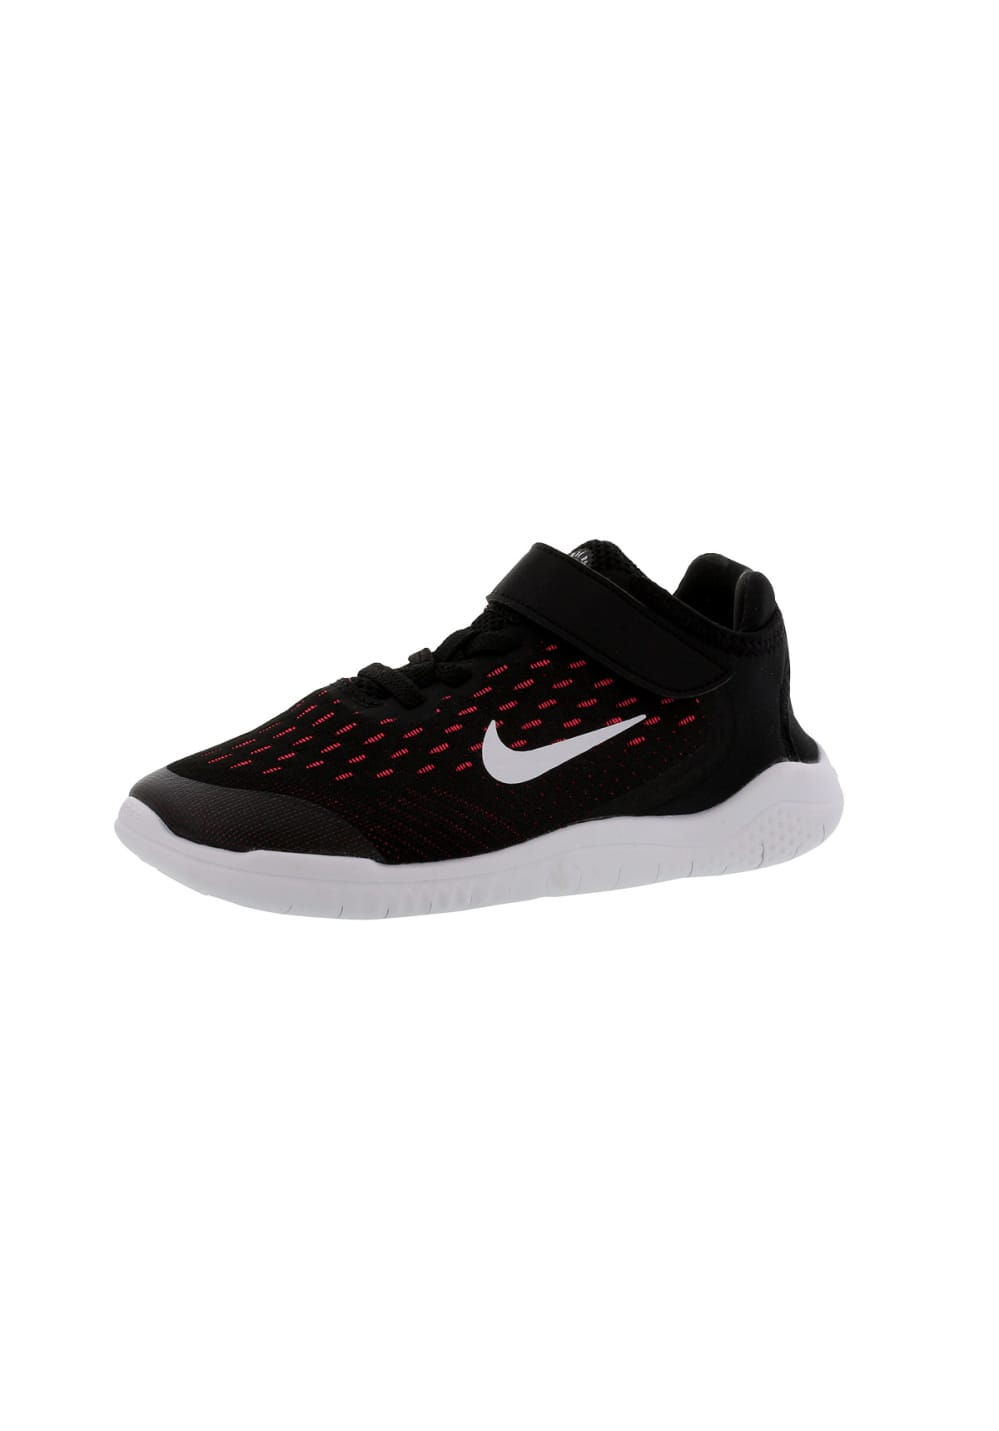 check out 387be dfcd2 Next. -60%. This product is currently out of stock. Nike. Free RN 2018 - Running  shoes